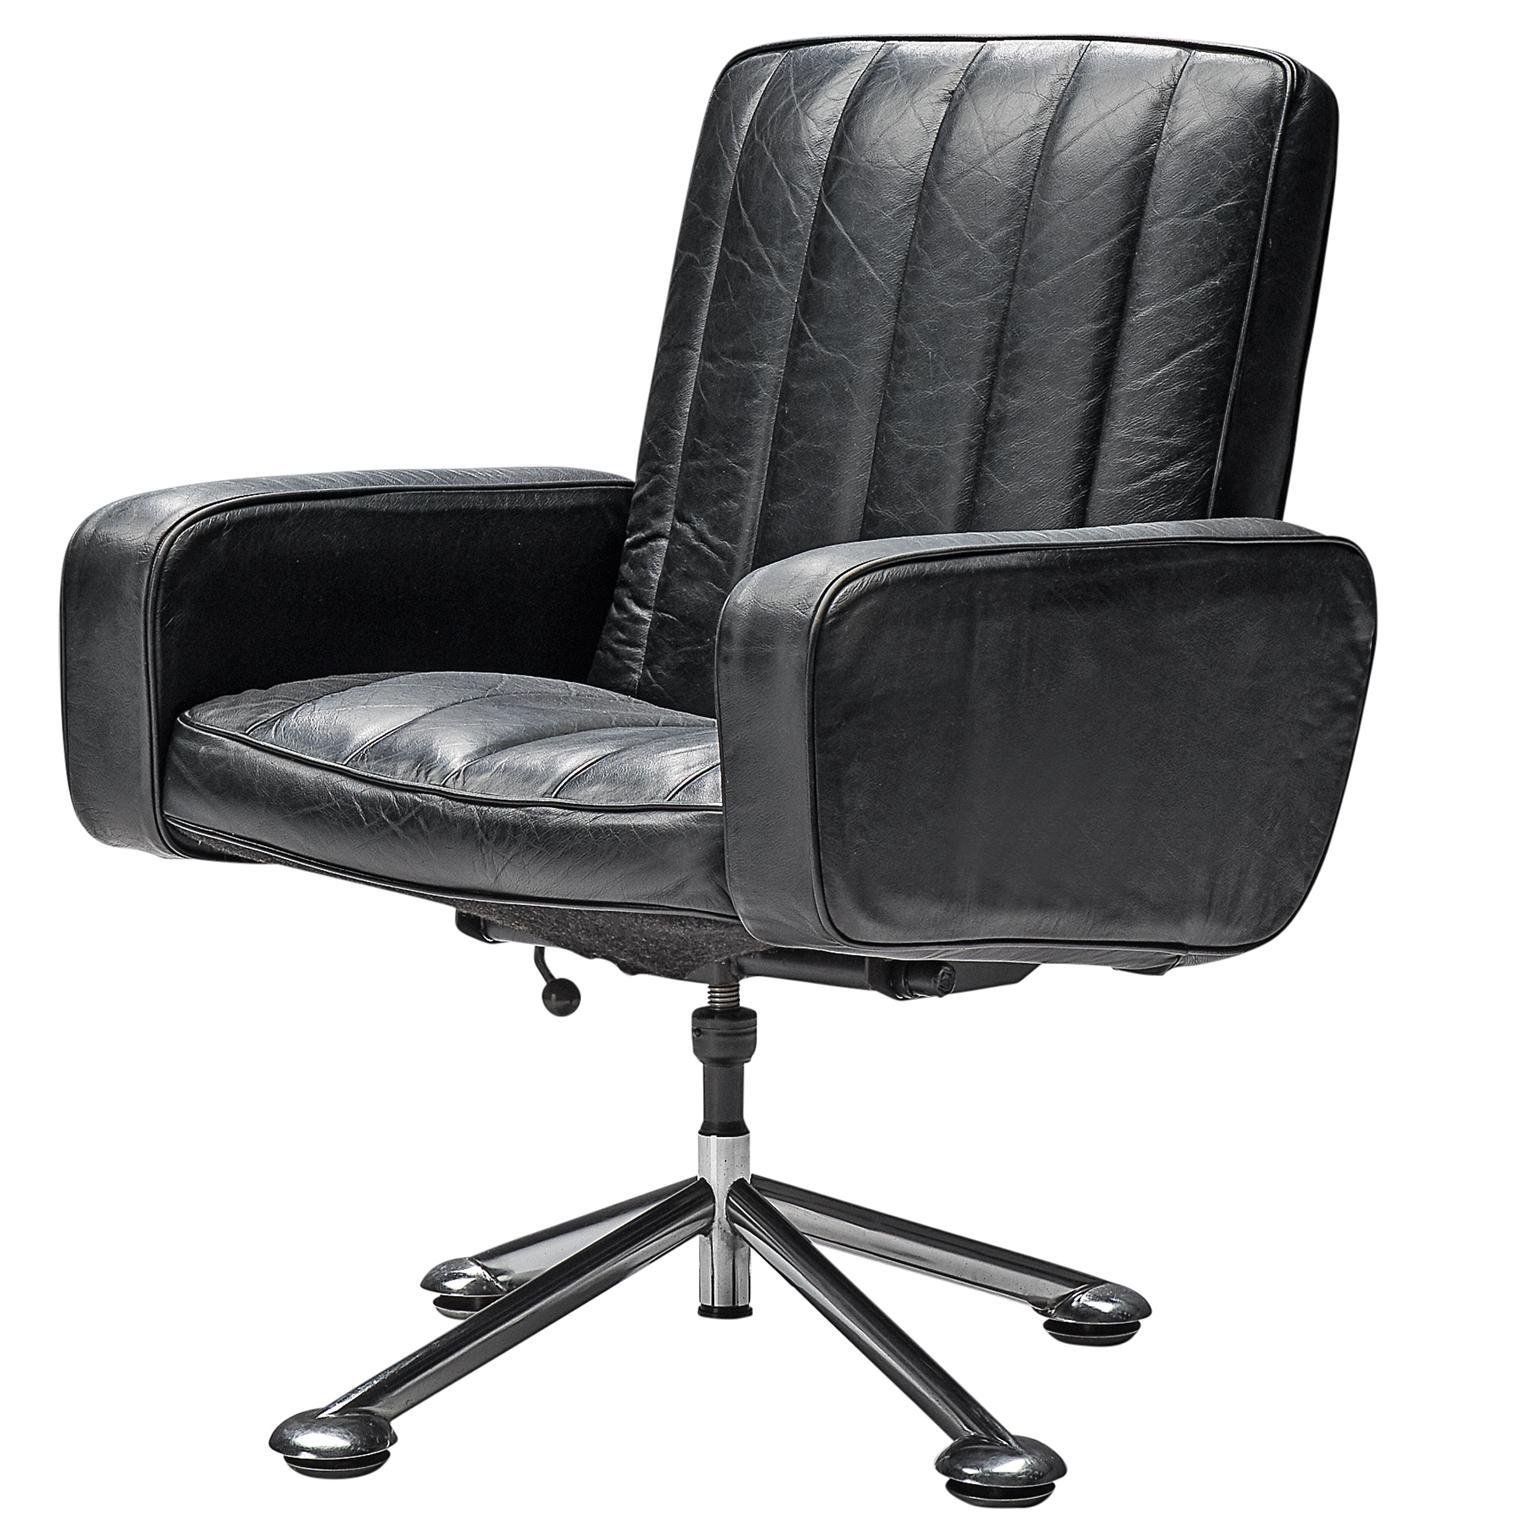 black leather desk chairs wire dining room sven ivar dysthe chair in at 1stdibs for sale